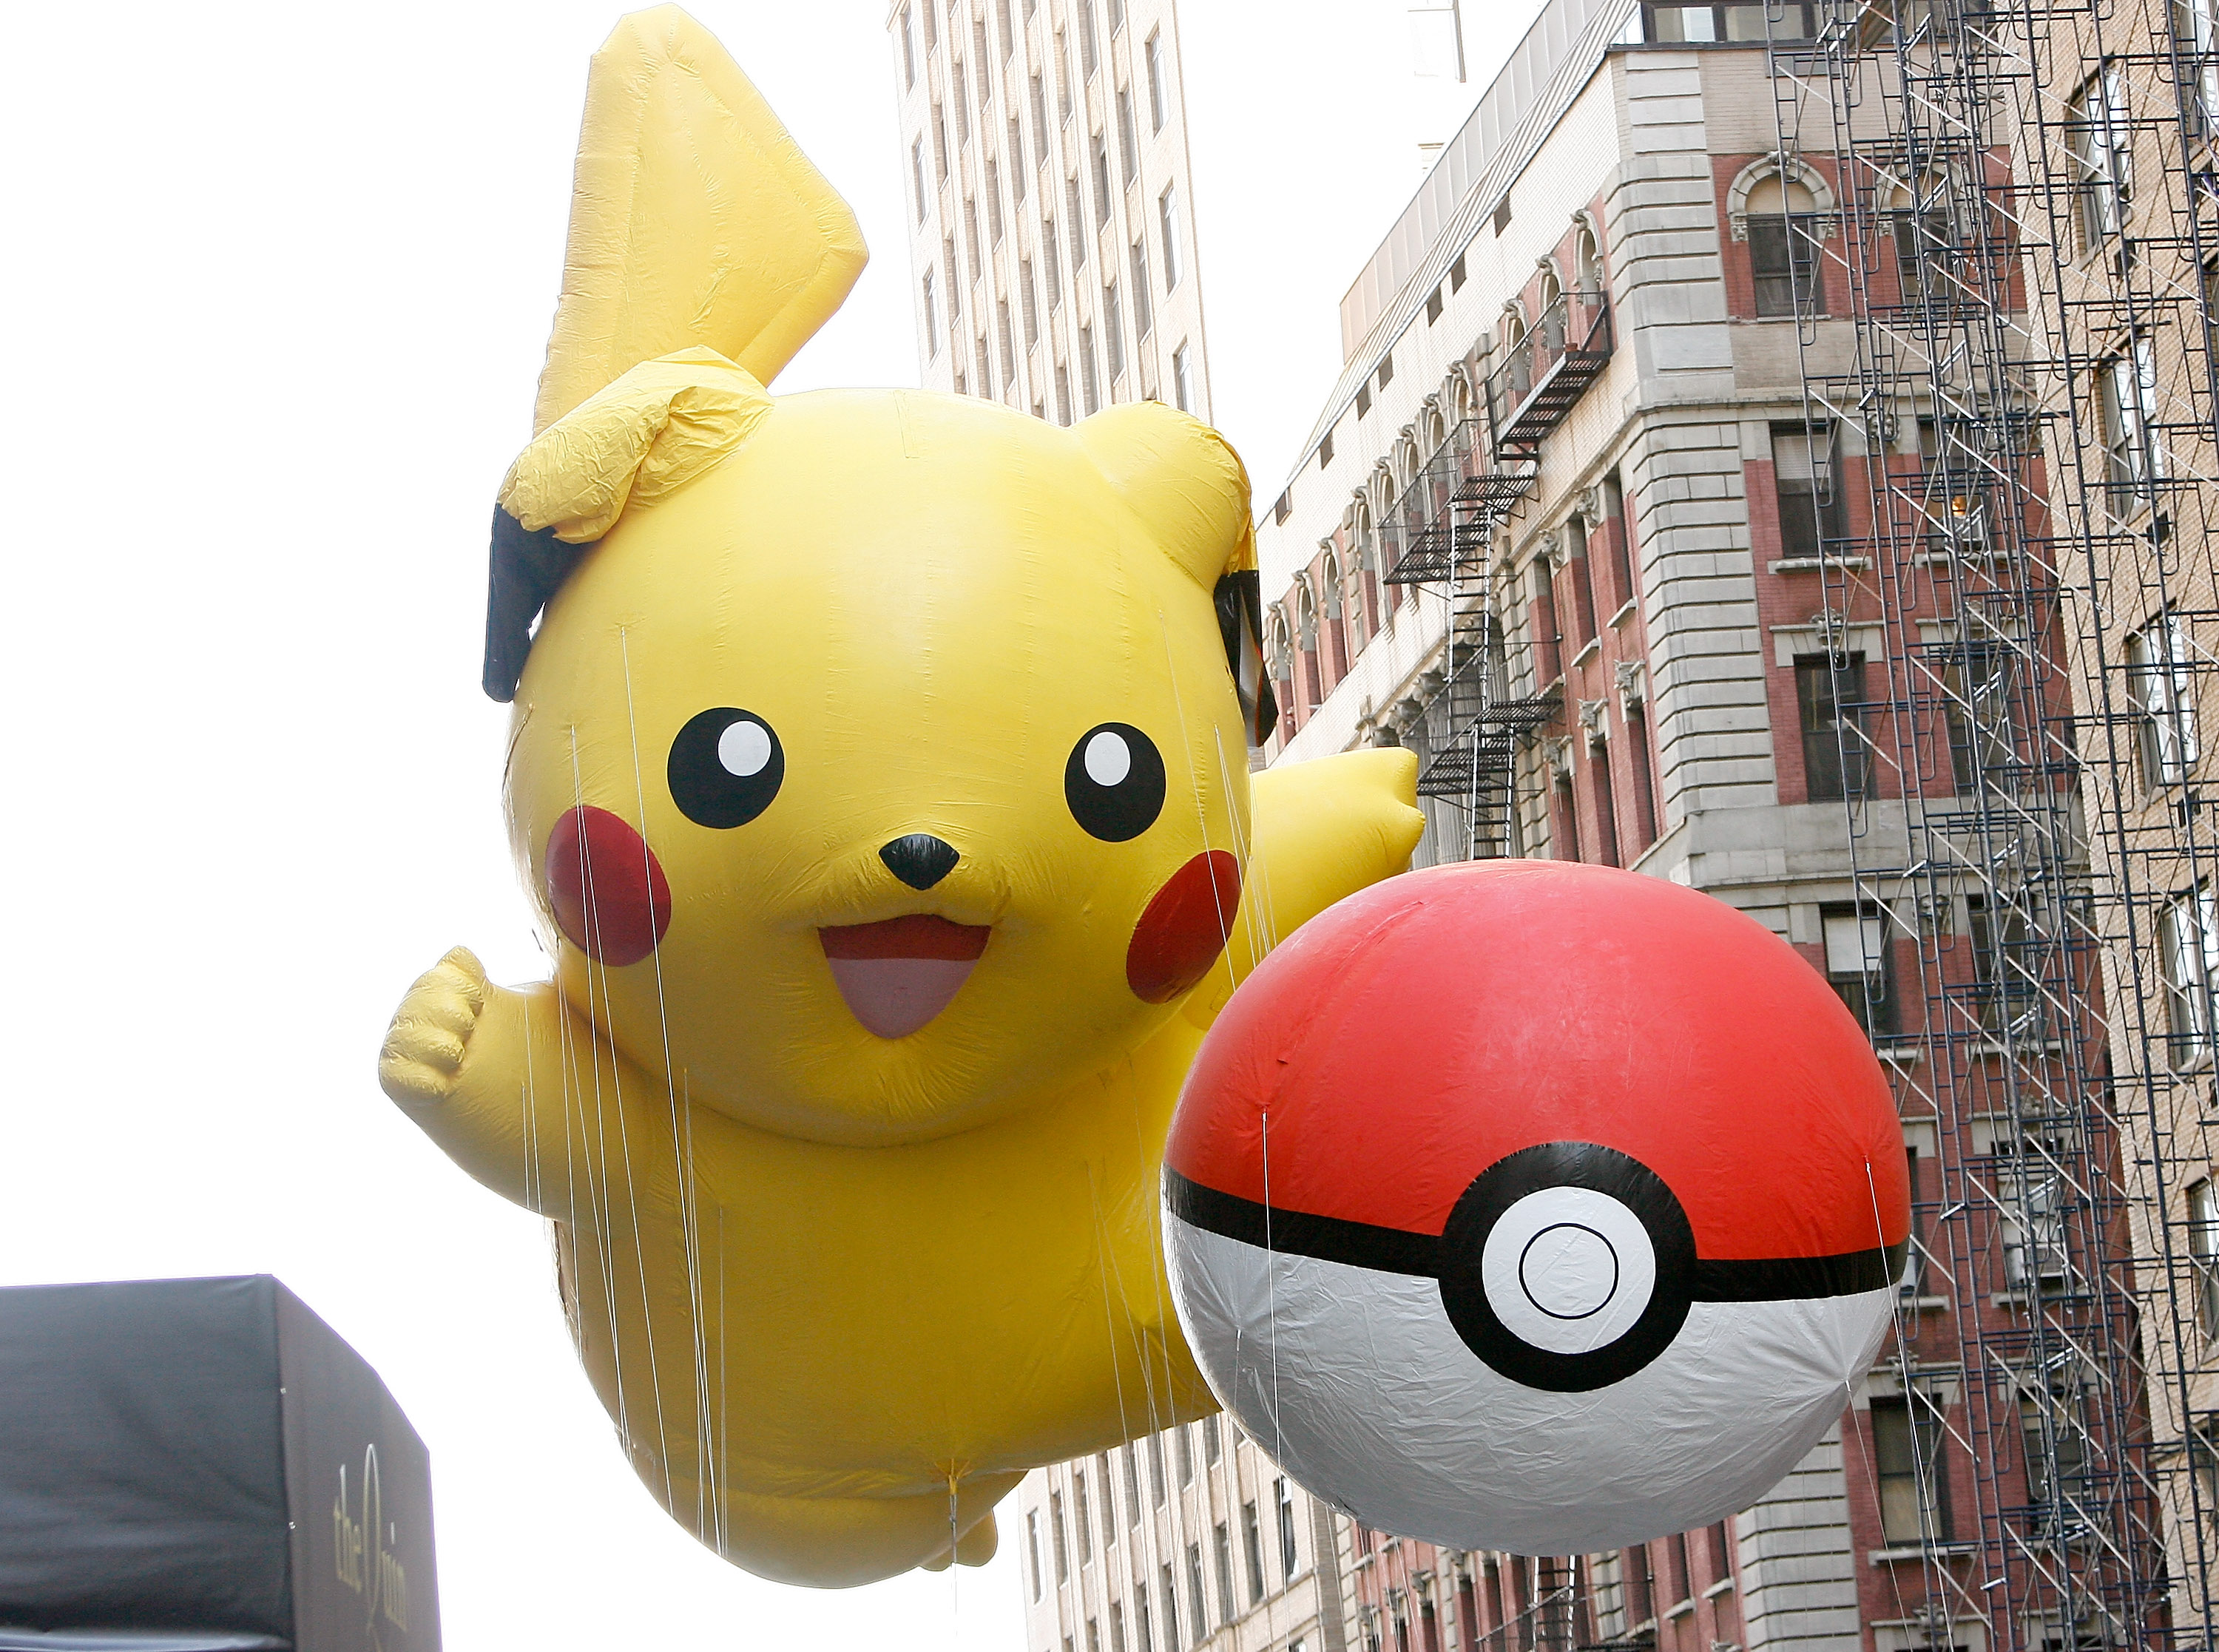 The Pikachu Pokemon balloons are seen during the 86th Annual Macy's Thanksgiving Day Parade